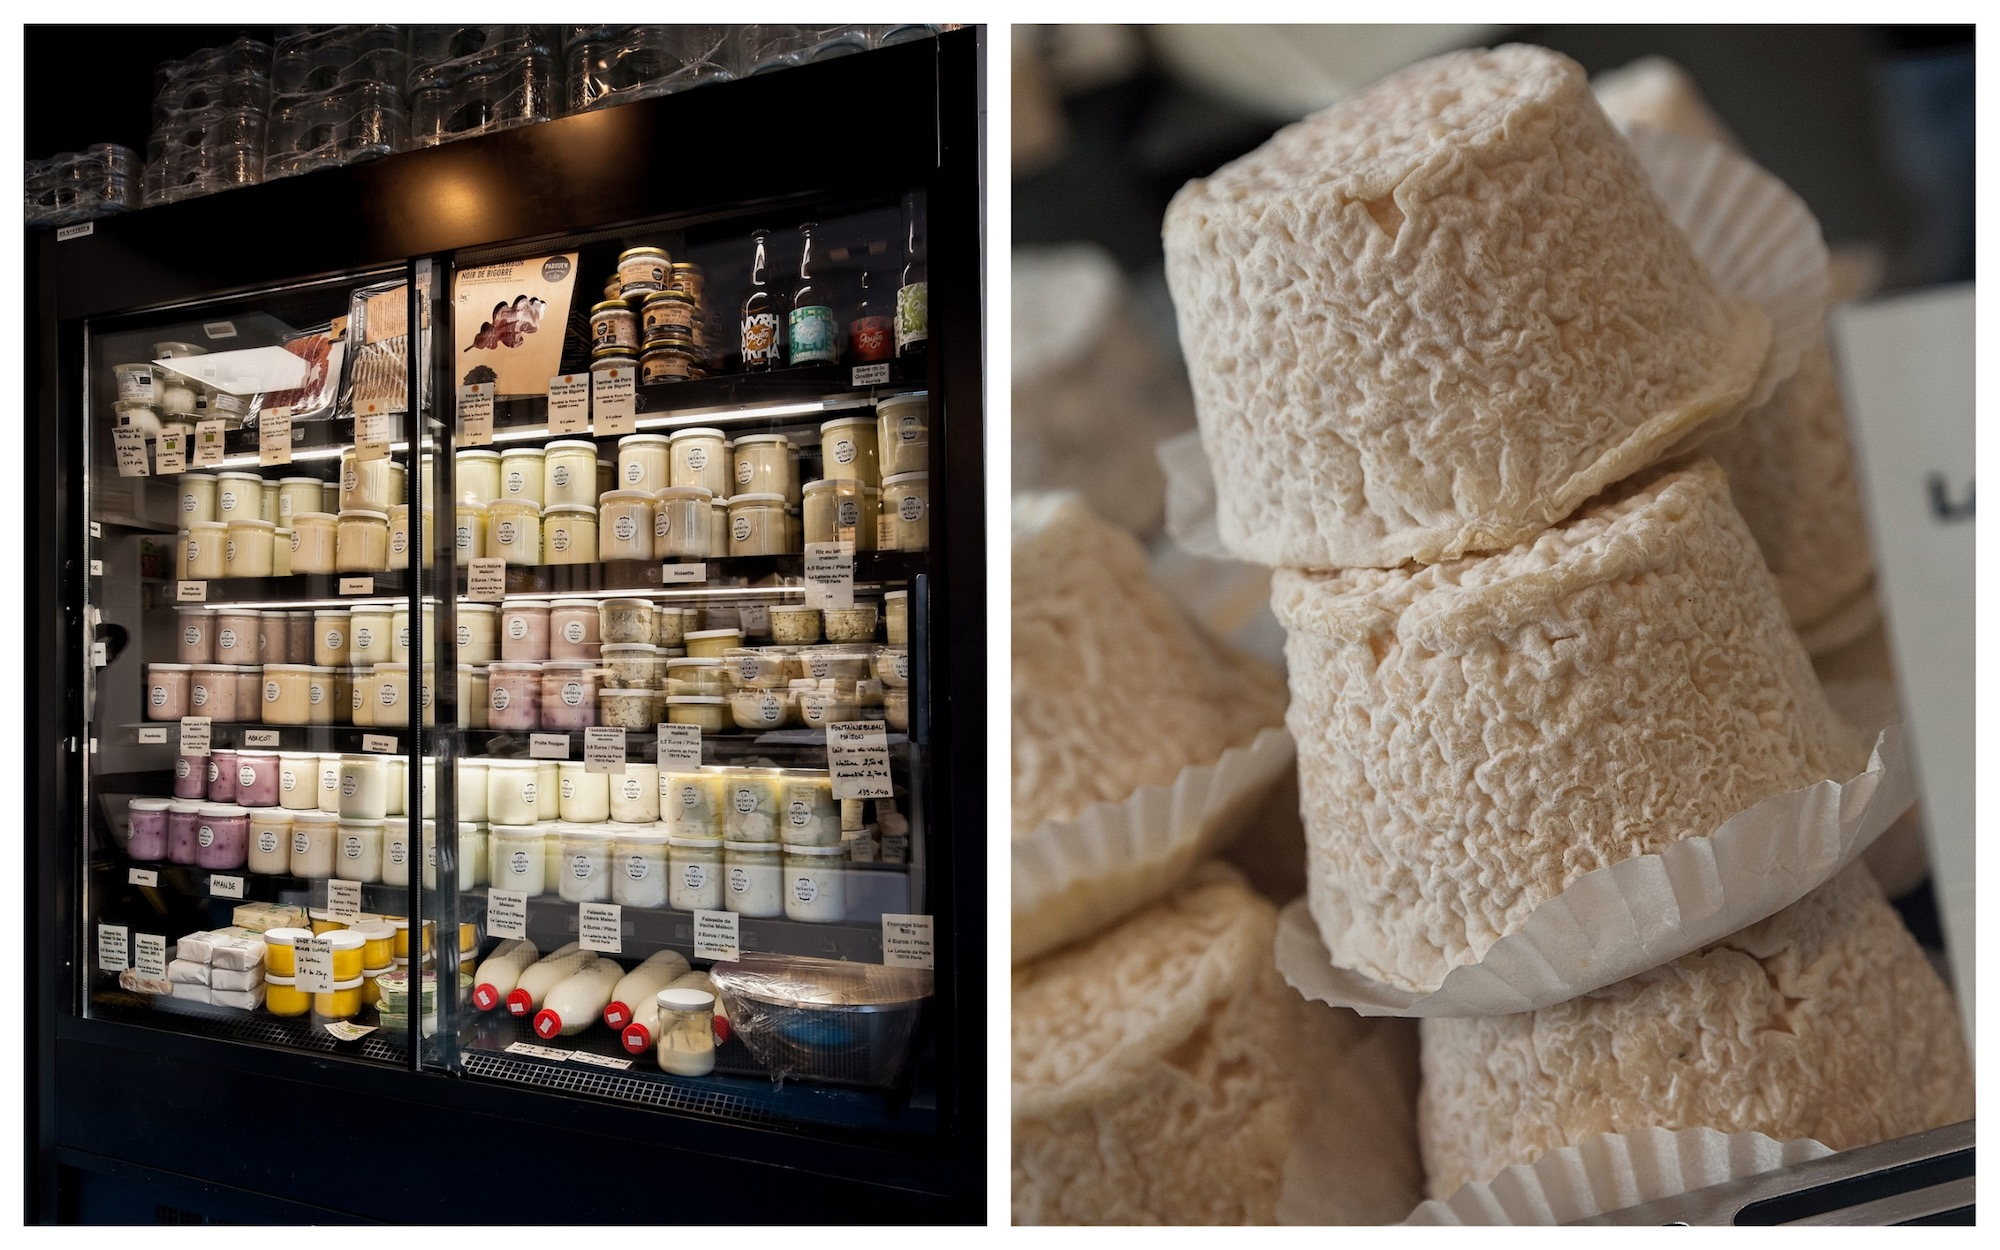 HiP Paris Blog discovers Paris' first cheese dairy La Laiterie de Paris which has lots of fresh goods to choose from in the fridges (left) as well as cheeses like this tasty goat's cheese (right).